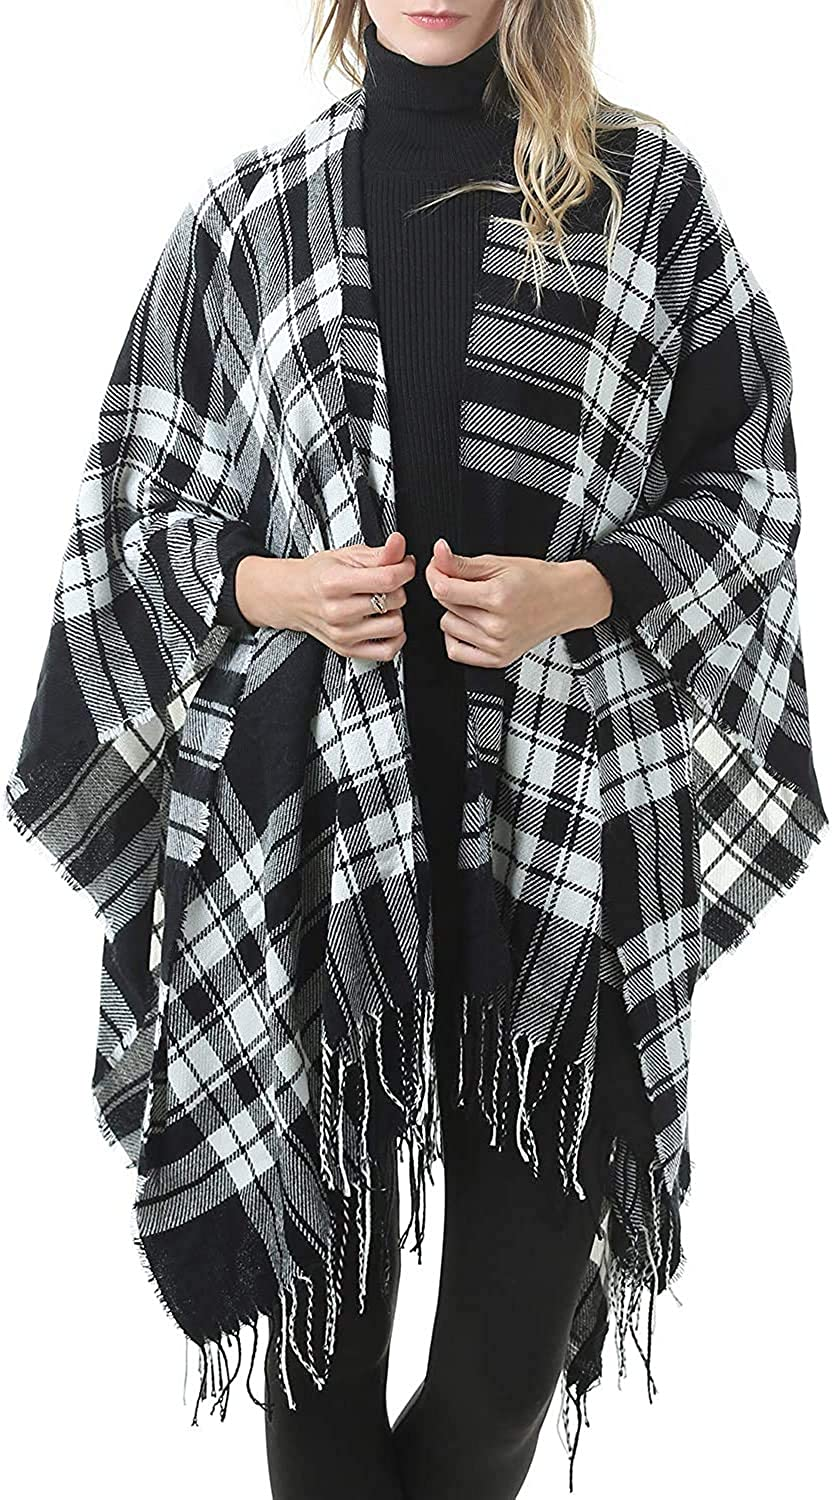 Luxurious Scarf Soft Scarf Neck Warmer MKLP Tassel Scarf Winter Ladies Scarf Large Warm Shawl Plaid Scarf Large Shawl Keep Warm and Prevent Cold Fringed